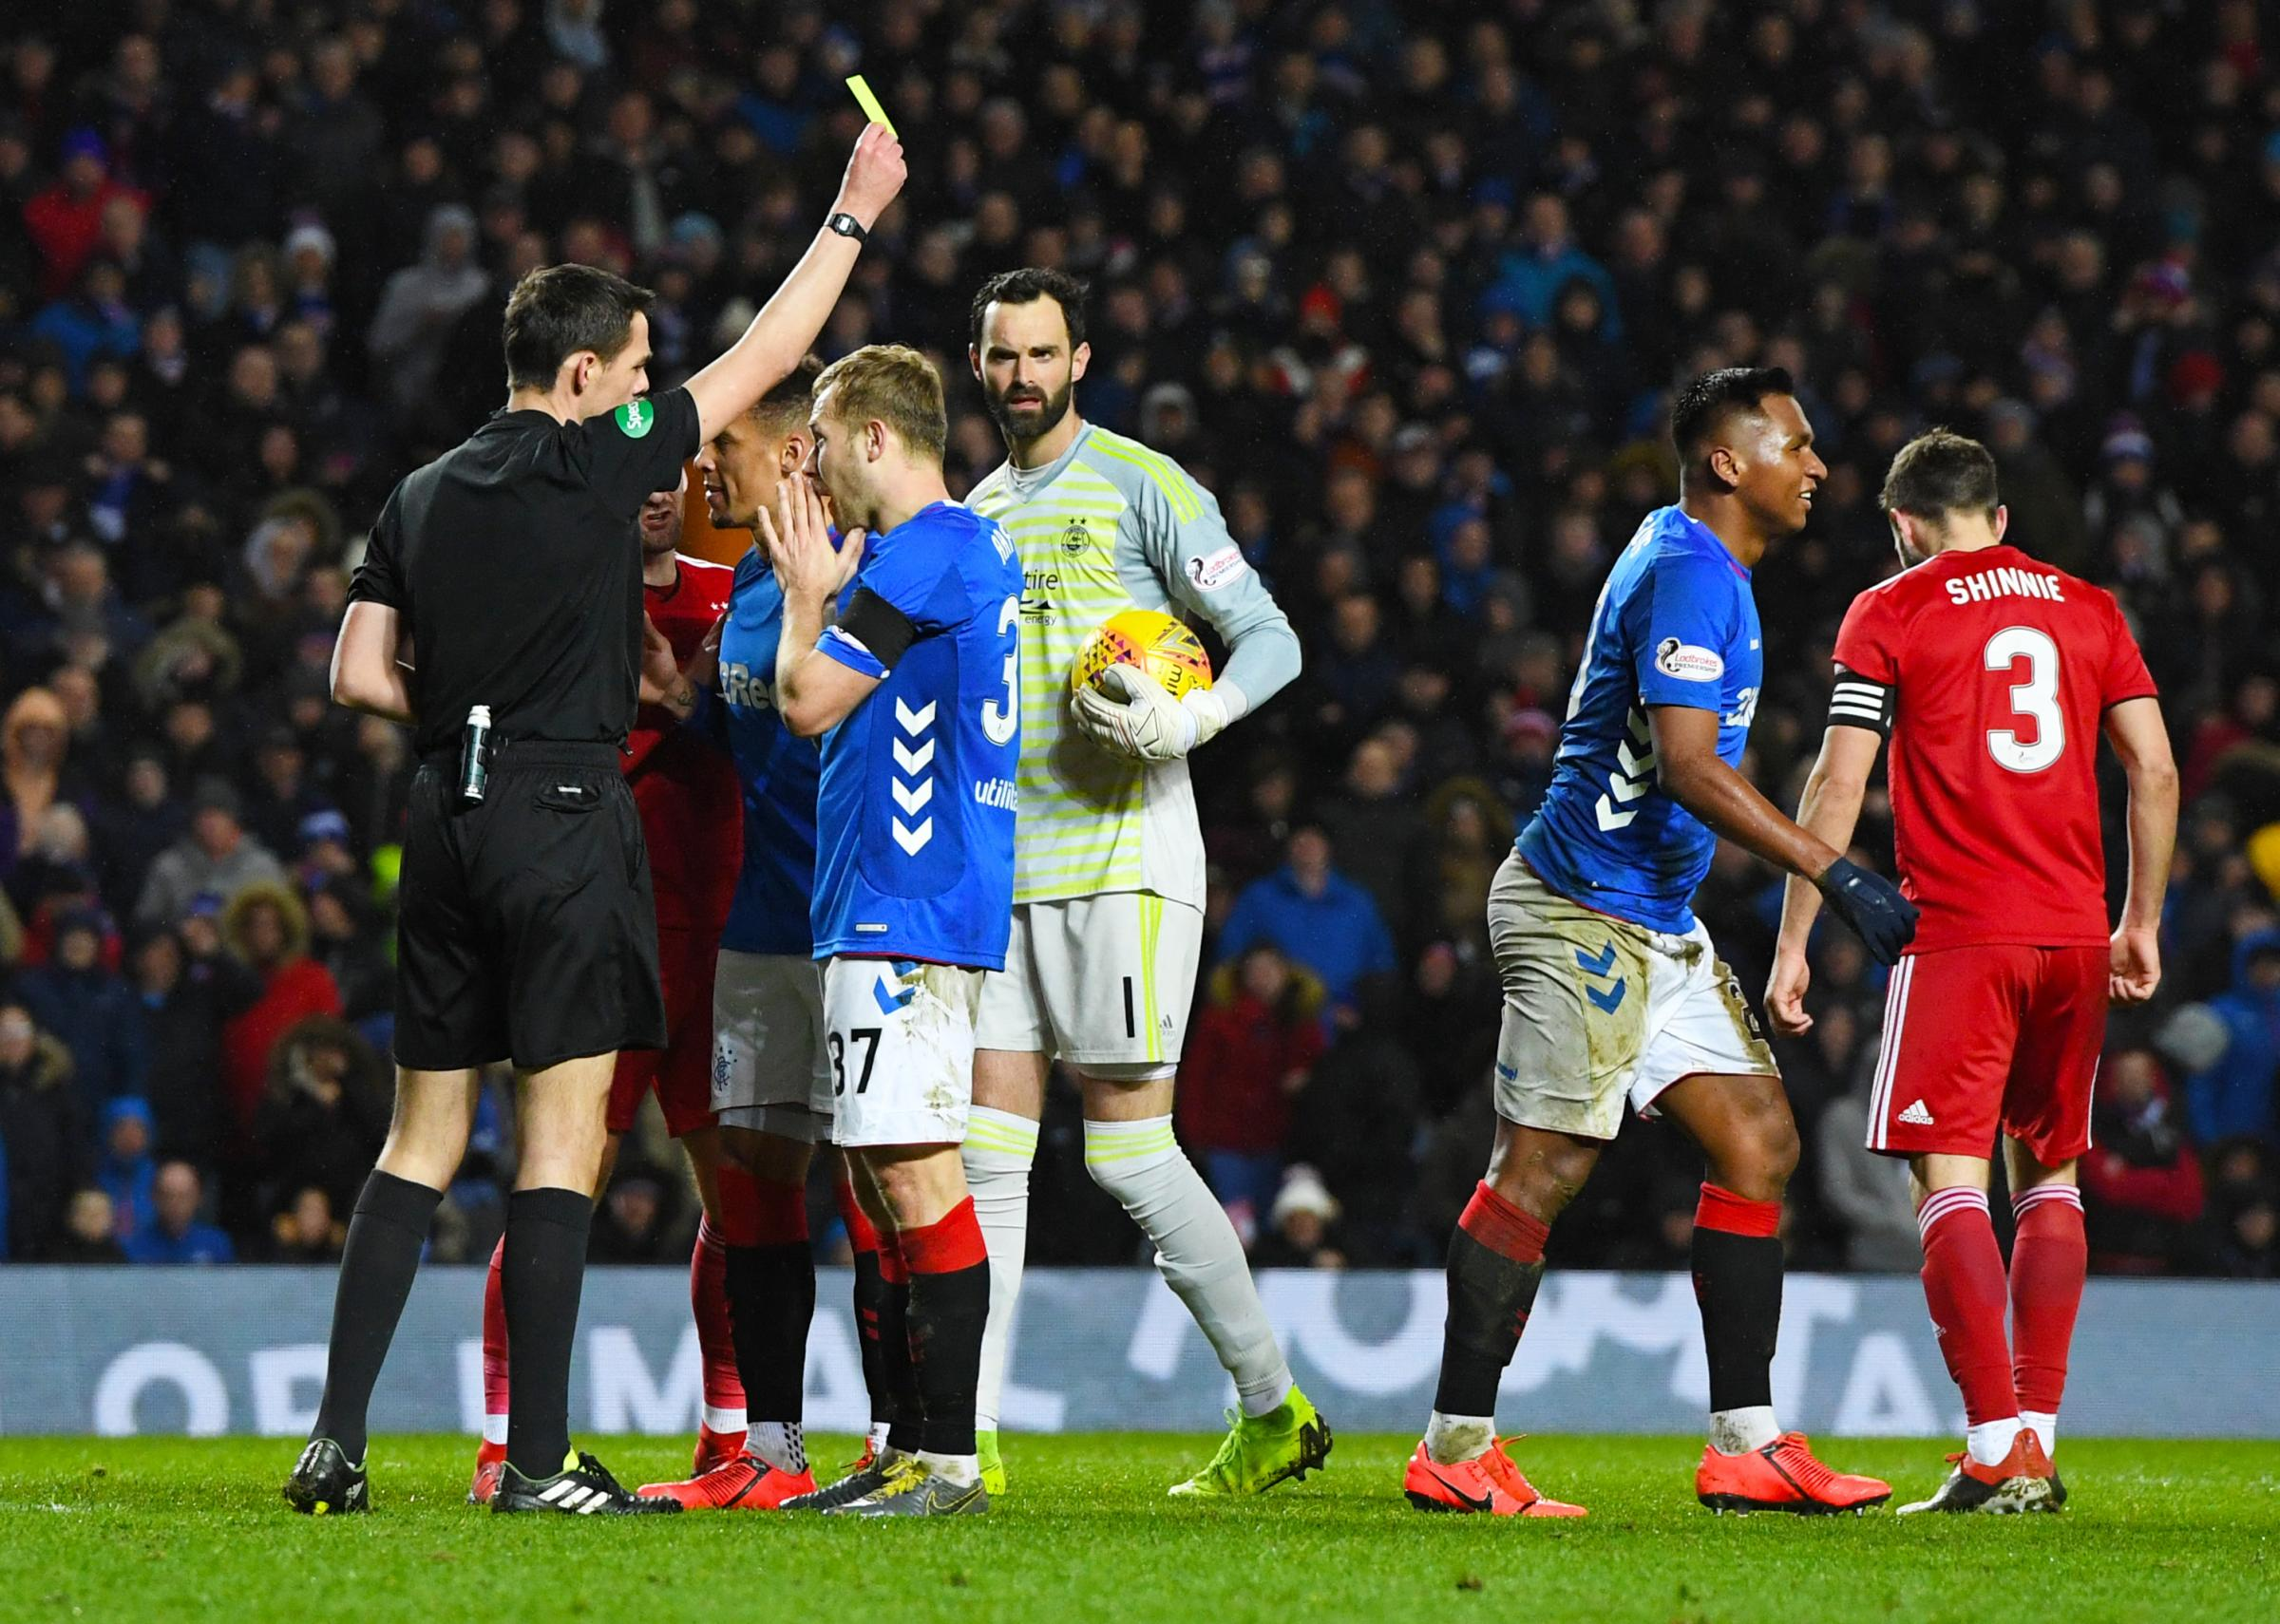 Rangers striker Alfredo Morelos, right, is booked by referee Kevin Clancy against Aberdeen.